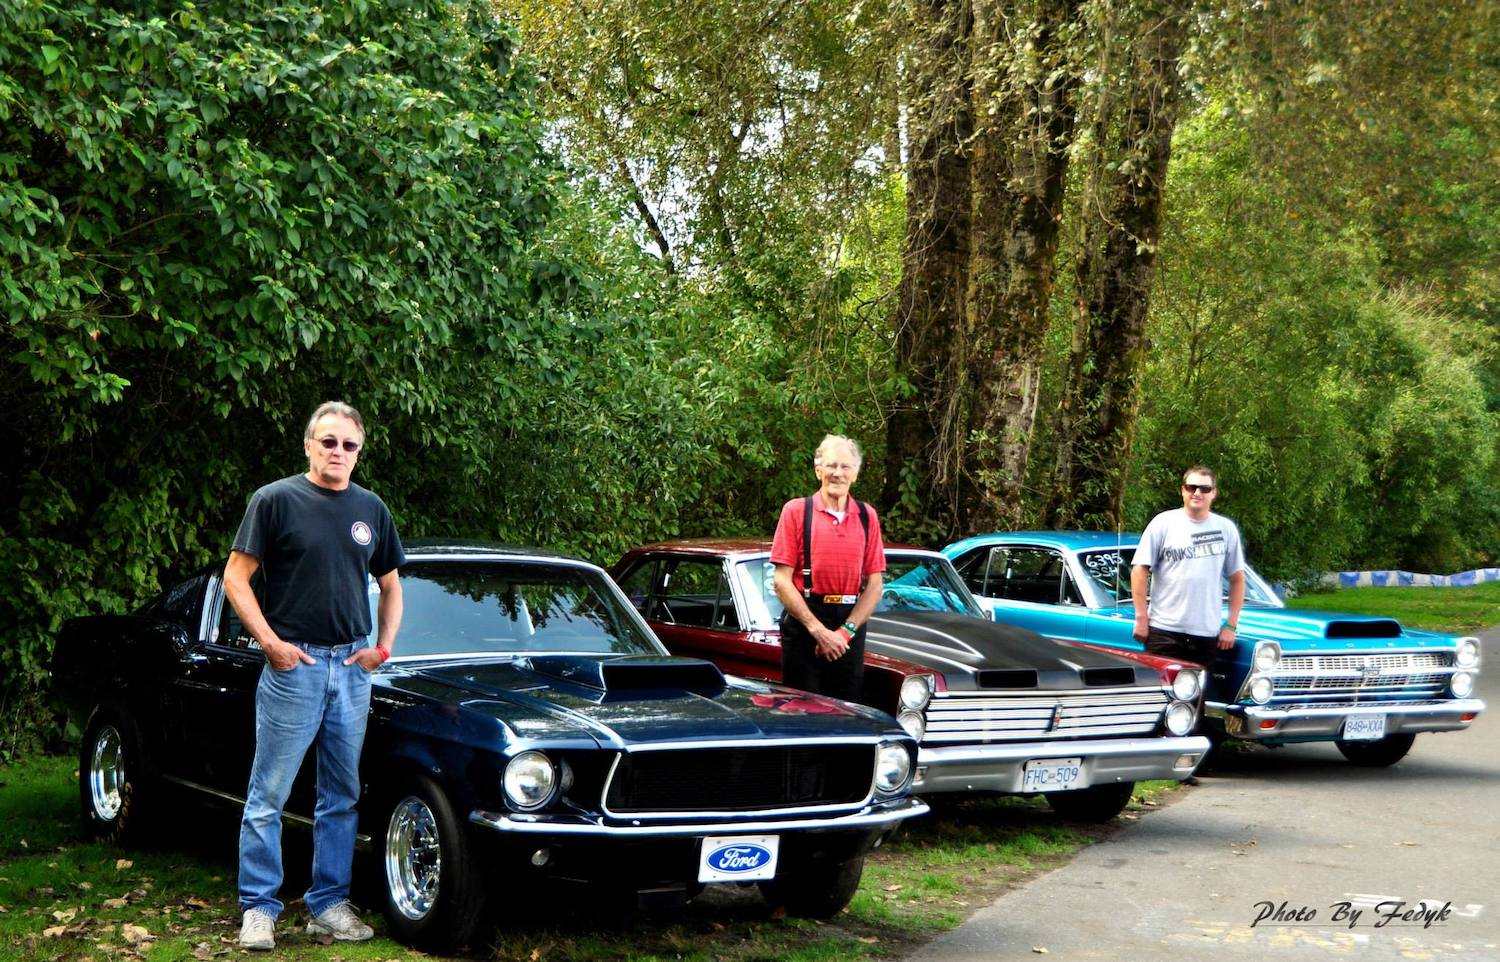 generational racers standing beside cars